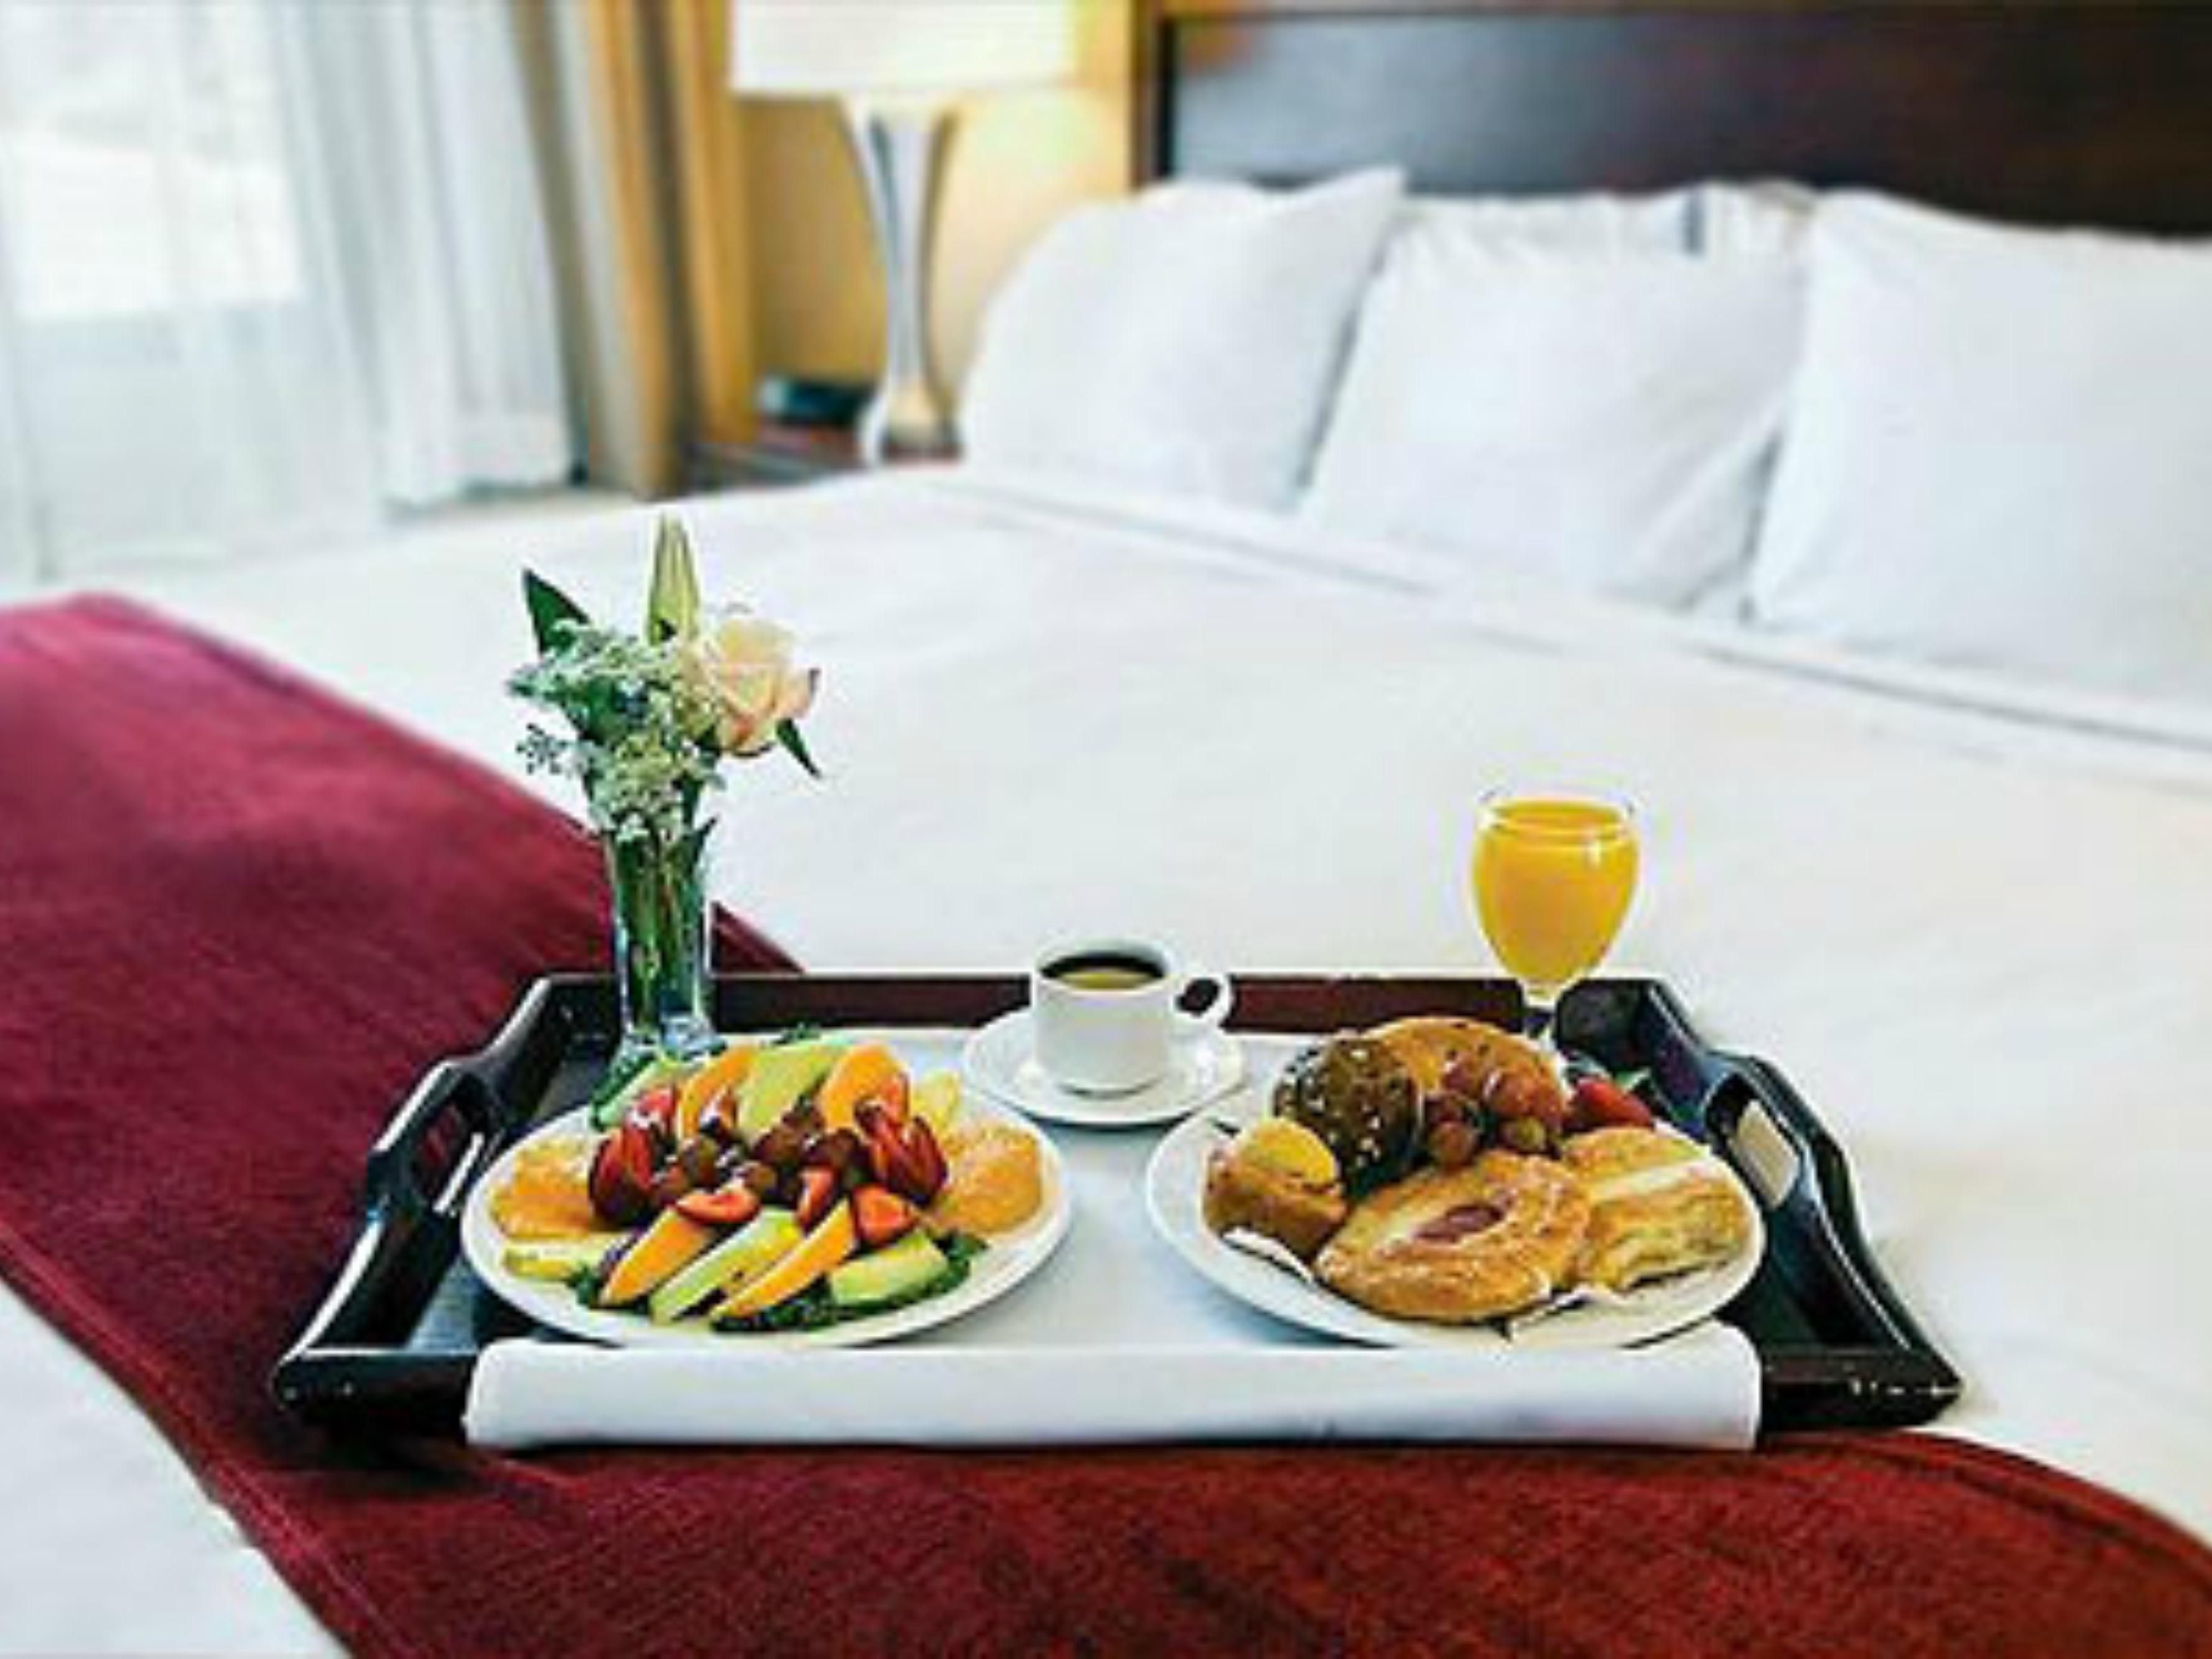 Room Service is available from 6:30am to 10pm.